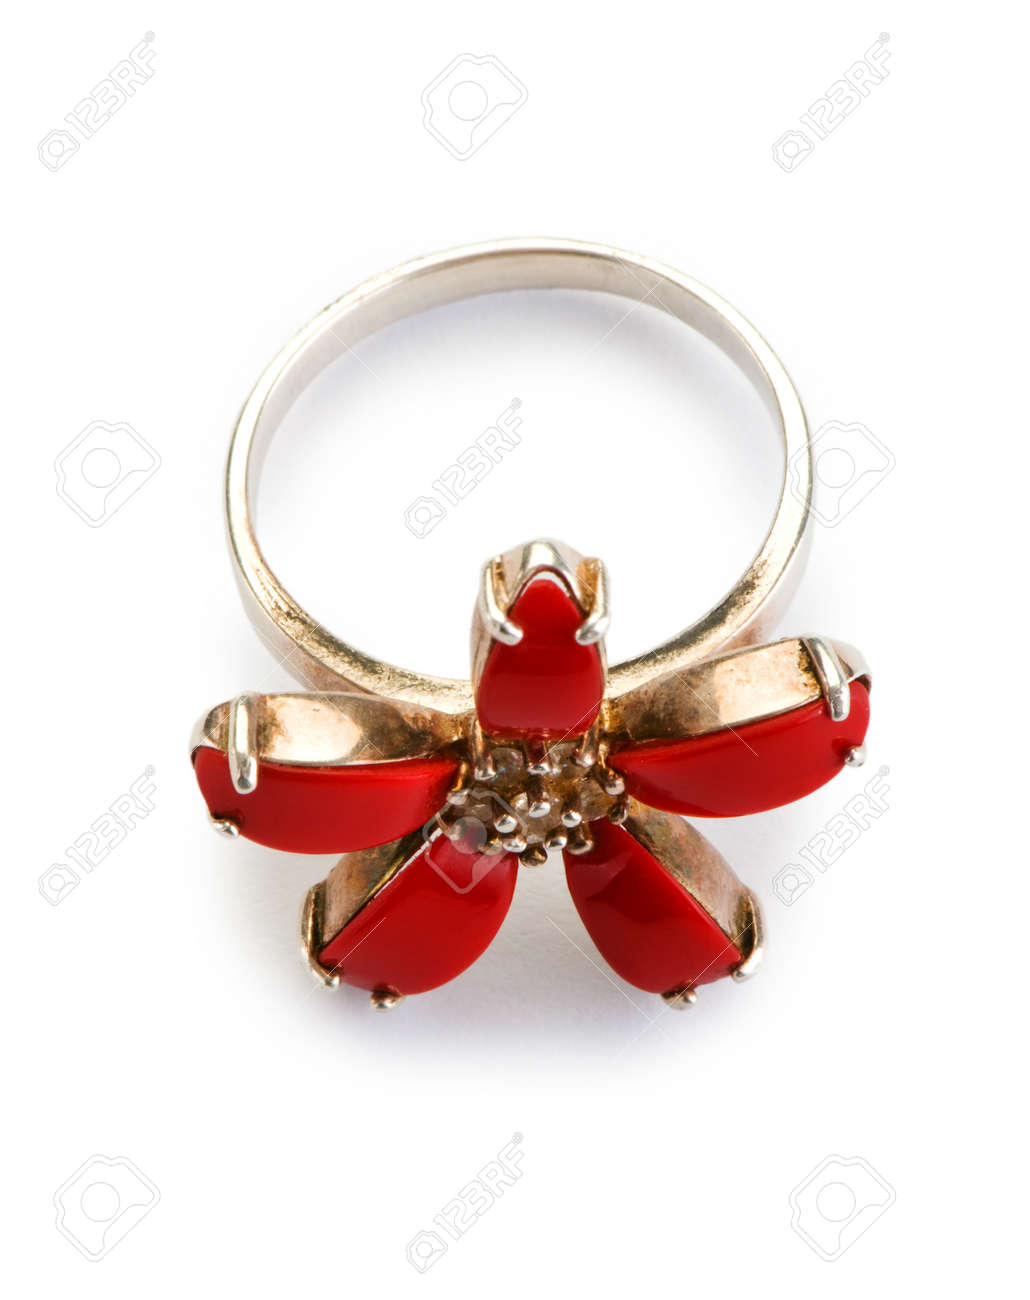 Jewellery ring isolated on the white background Stock Photo - 7188871